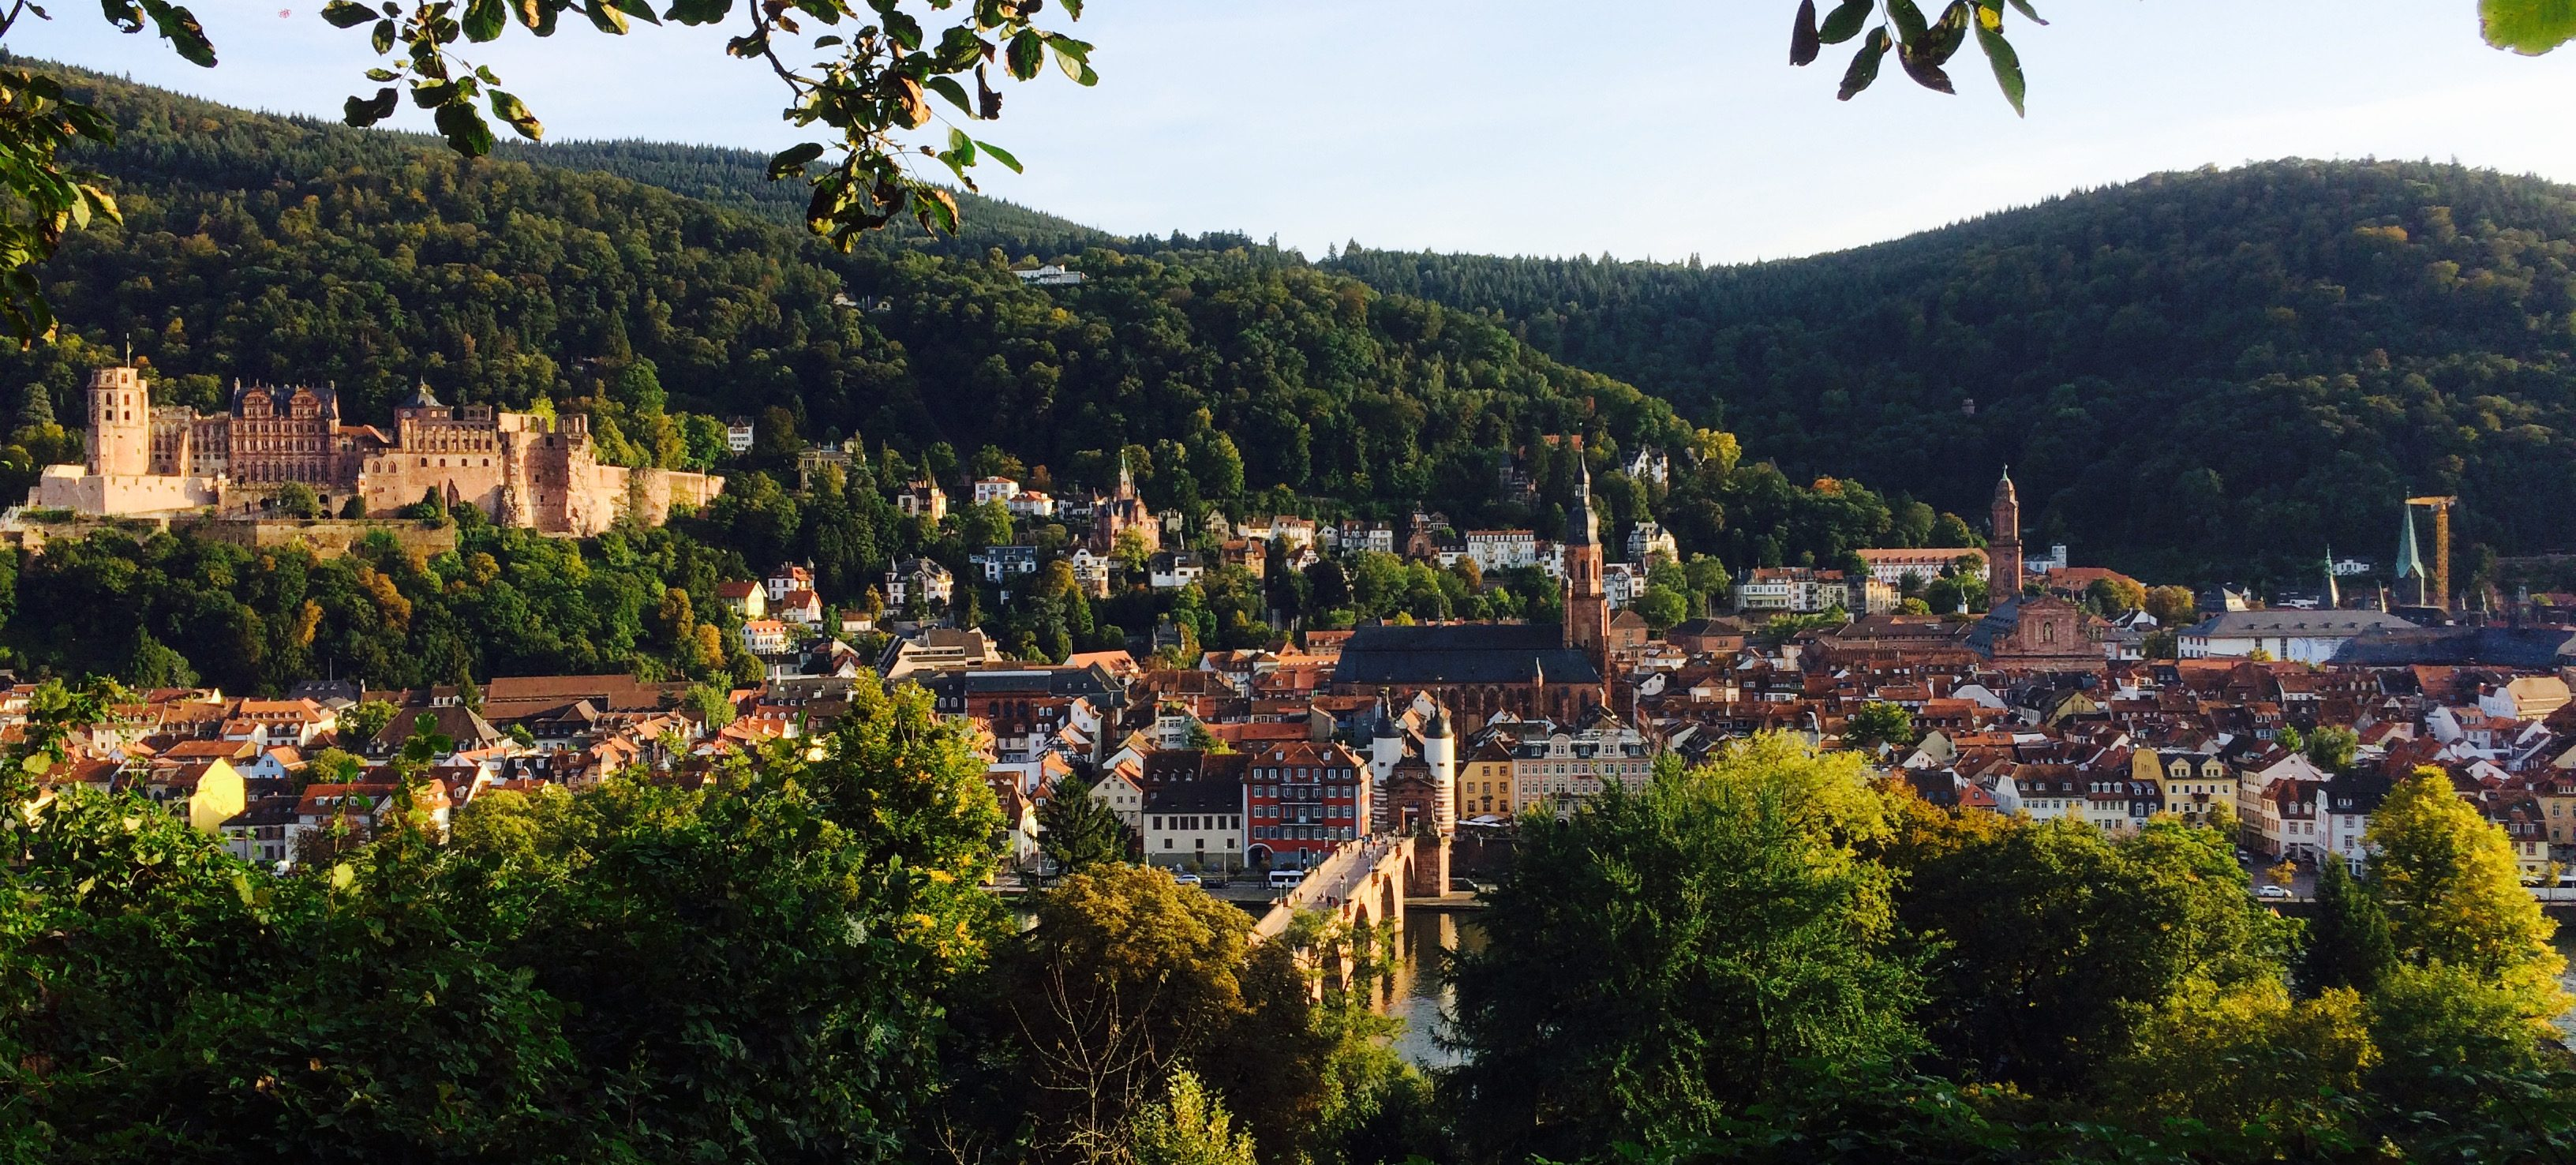 5 Best German Fairytale Towns - The Traveling Storygirl